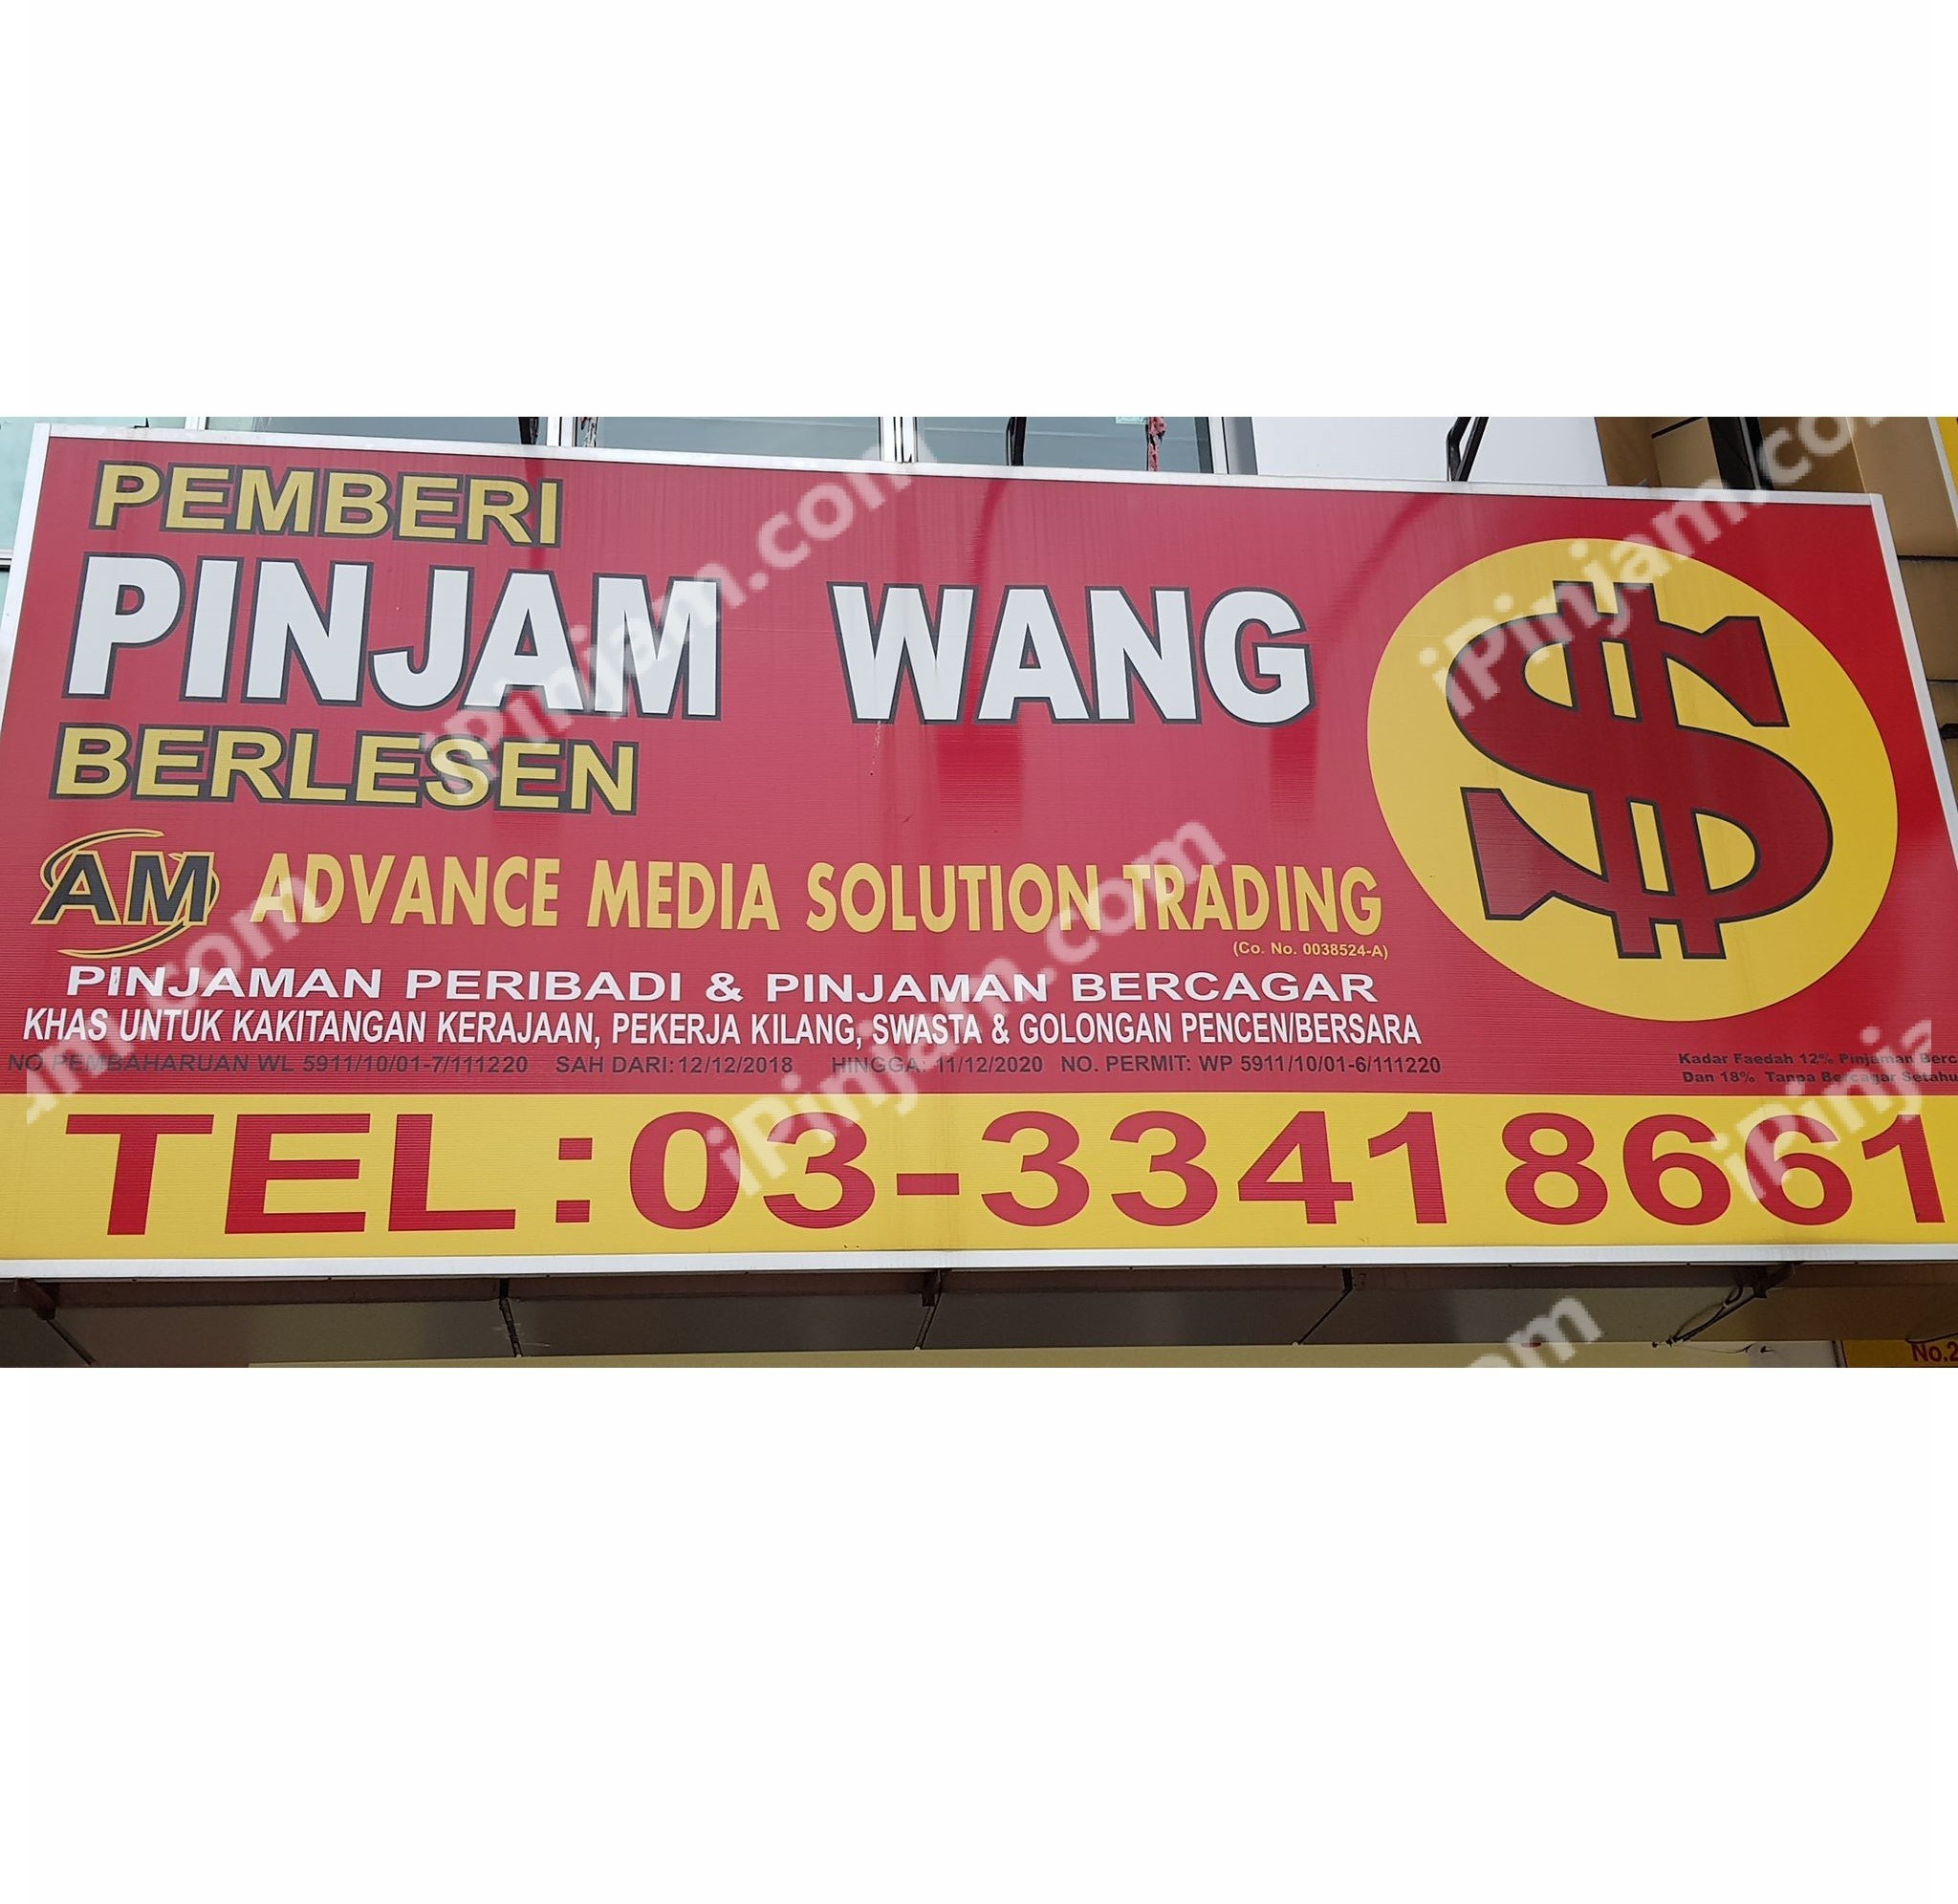 Advance Media Solution Trading Cheras Ipinjam Com Direktori